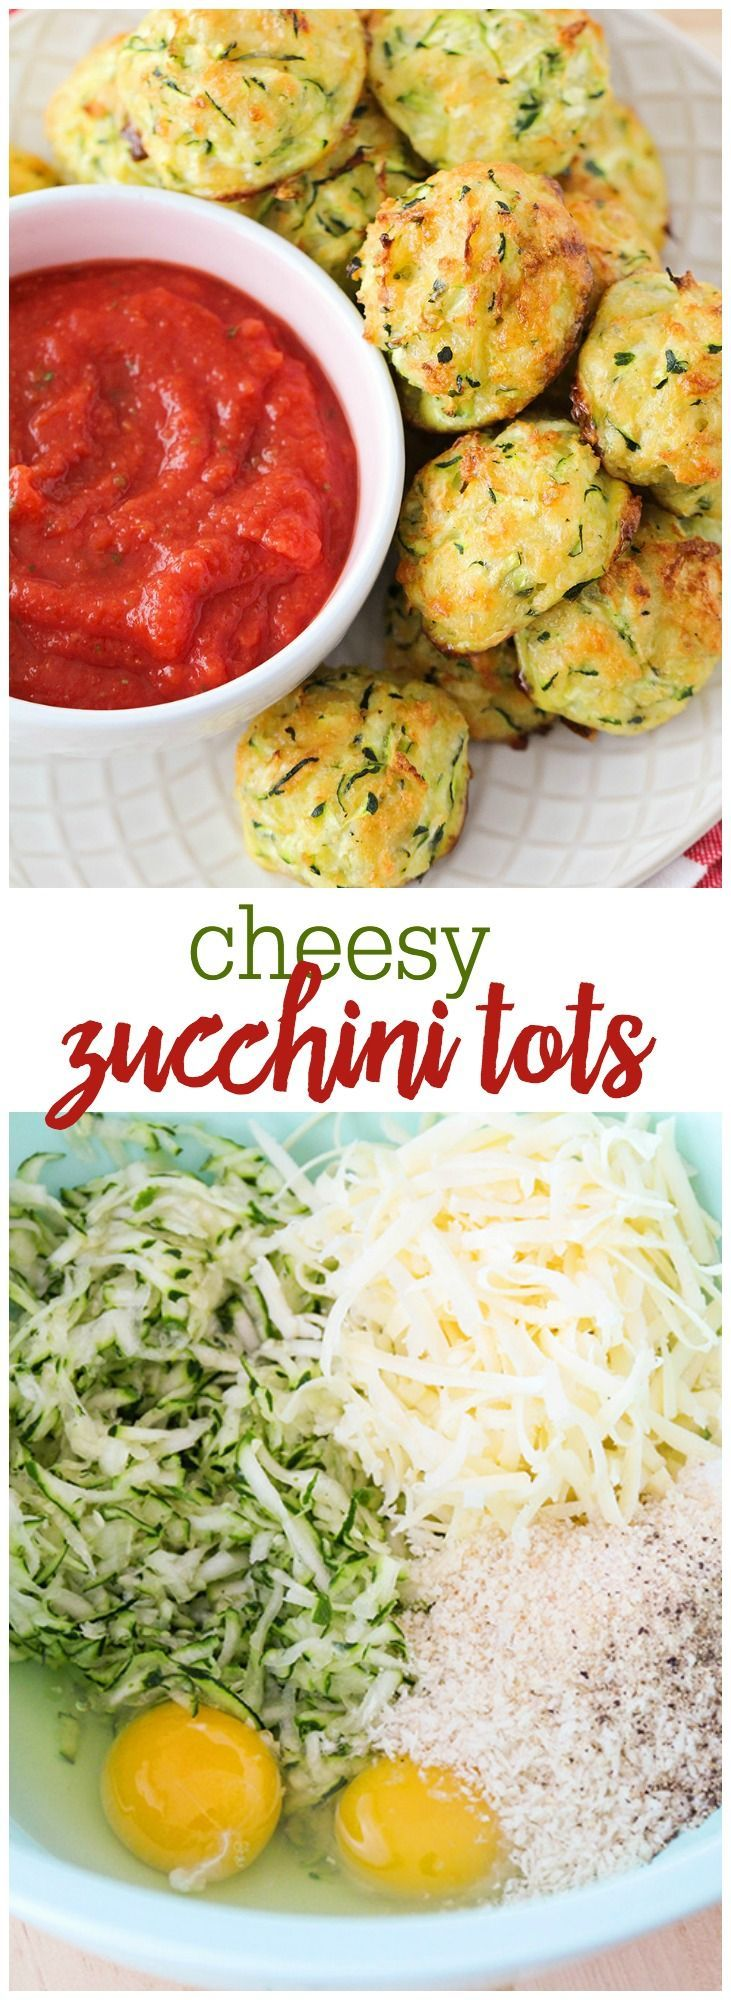 Cheesy Zucchini Tots - these tots are loaded with shredded zucchini, bread crumbs, and cheese making them the perfect appetizer.